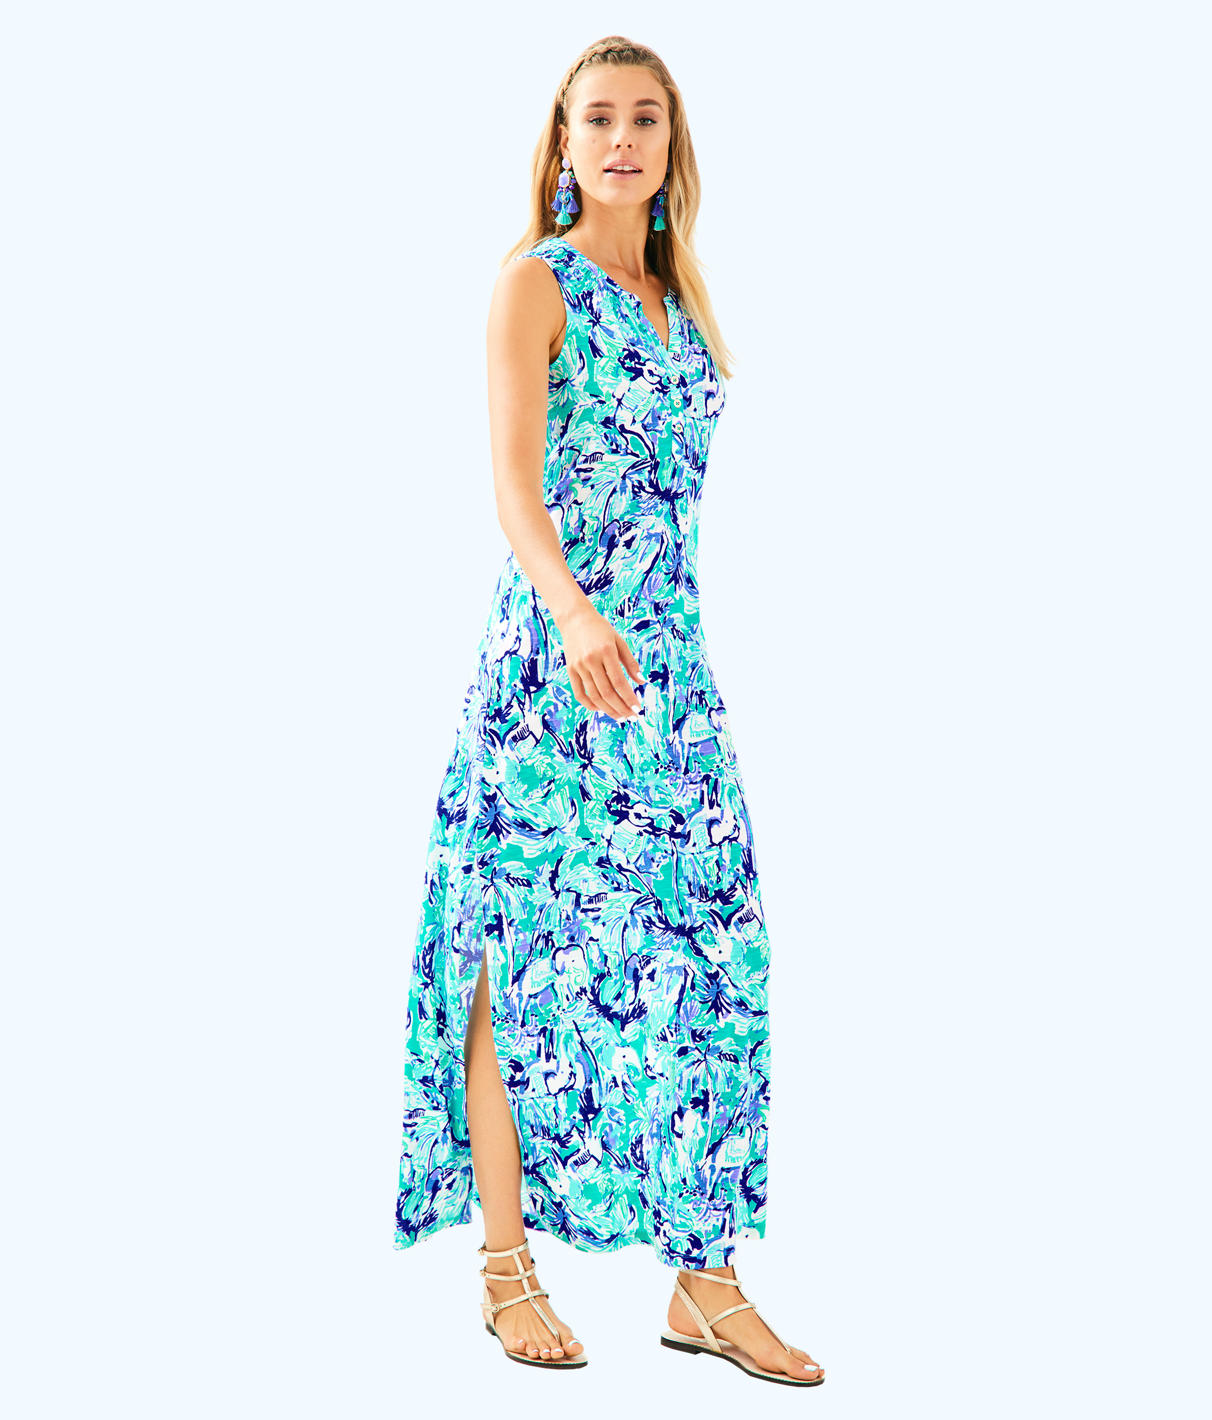 Lilly Pulitzer Lilly Pulitzer Womens Essie Maxi Dress